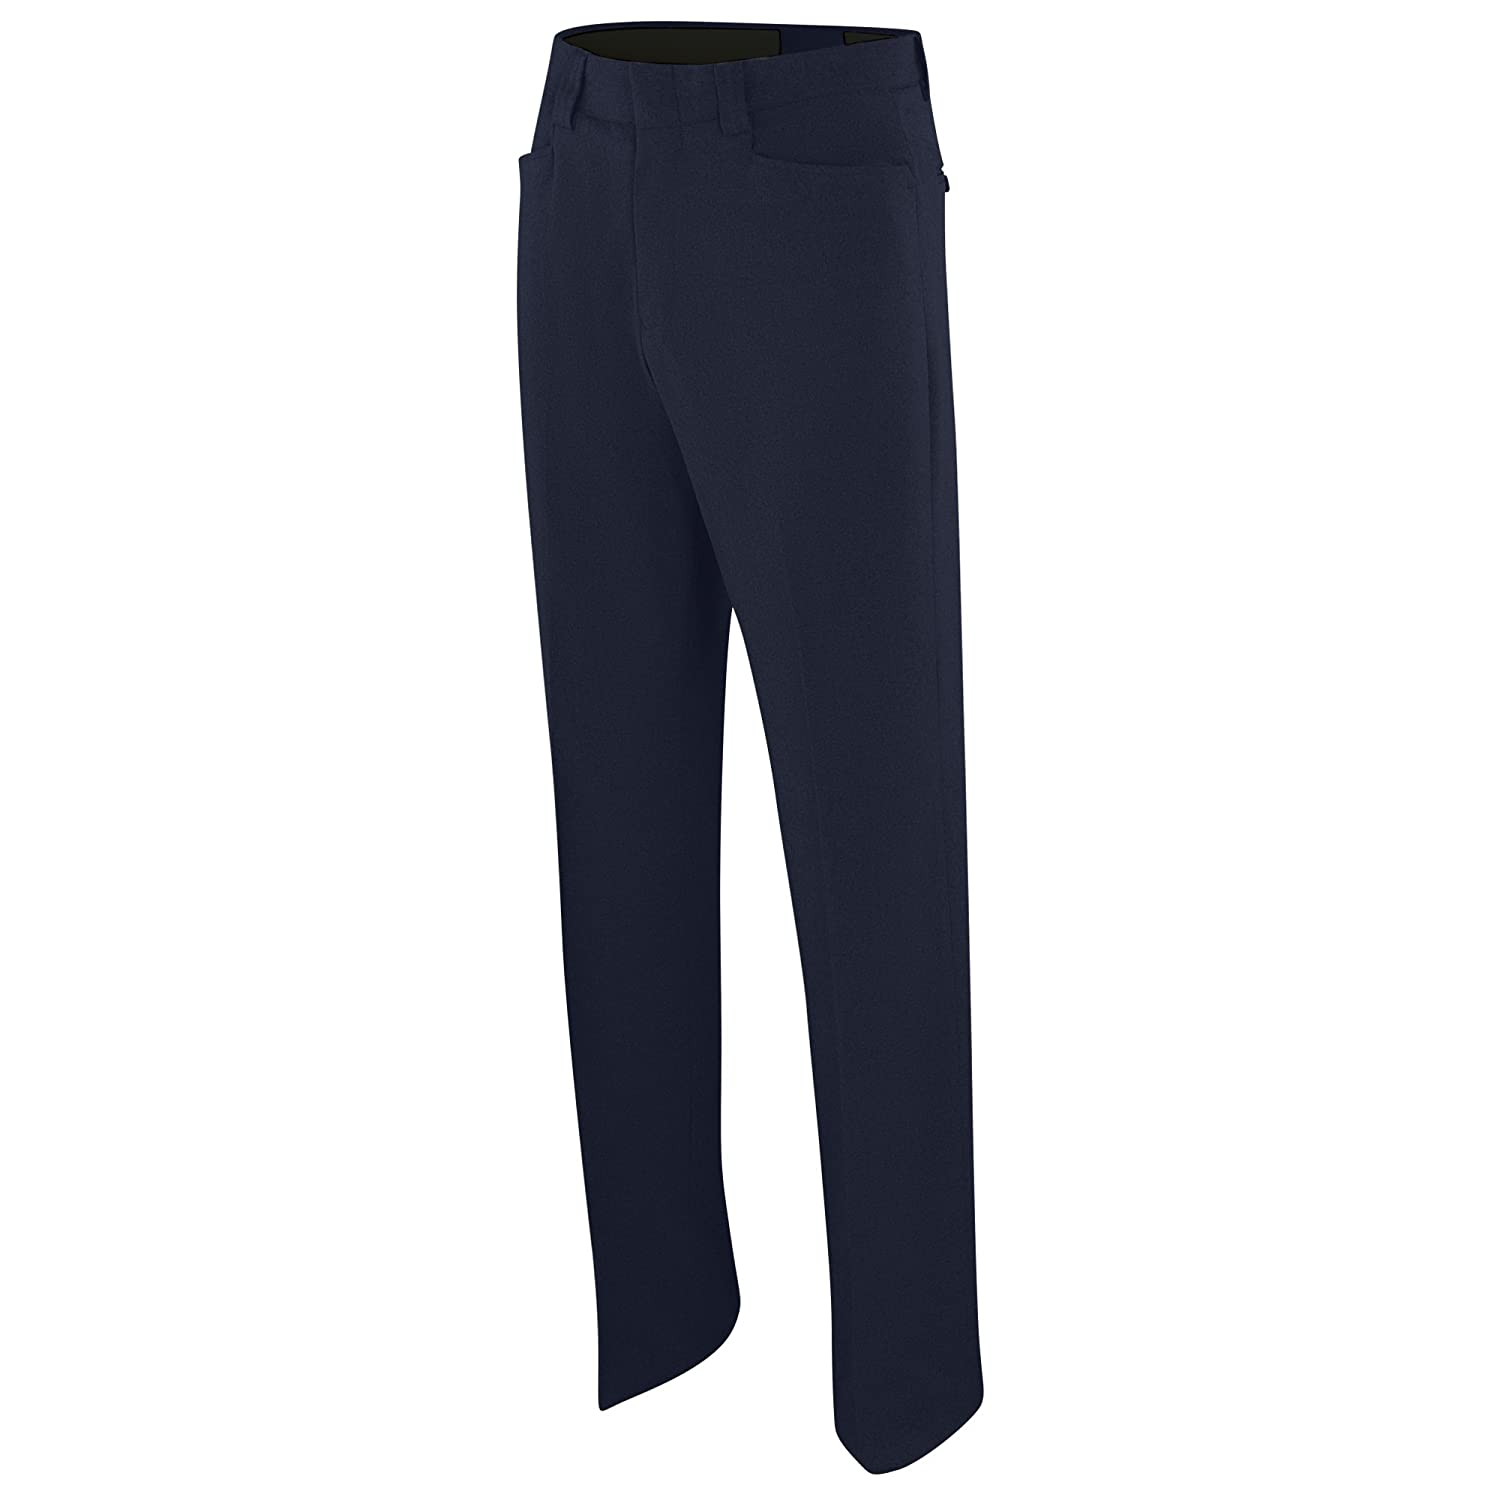 Navy Adams USA ADMBB377-46-NY Umpire Combo Flat Front Poly//Spandex Uniform Pants Size 46 Schutt Sports